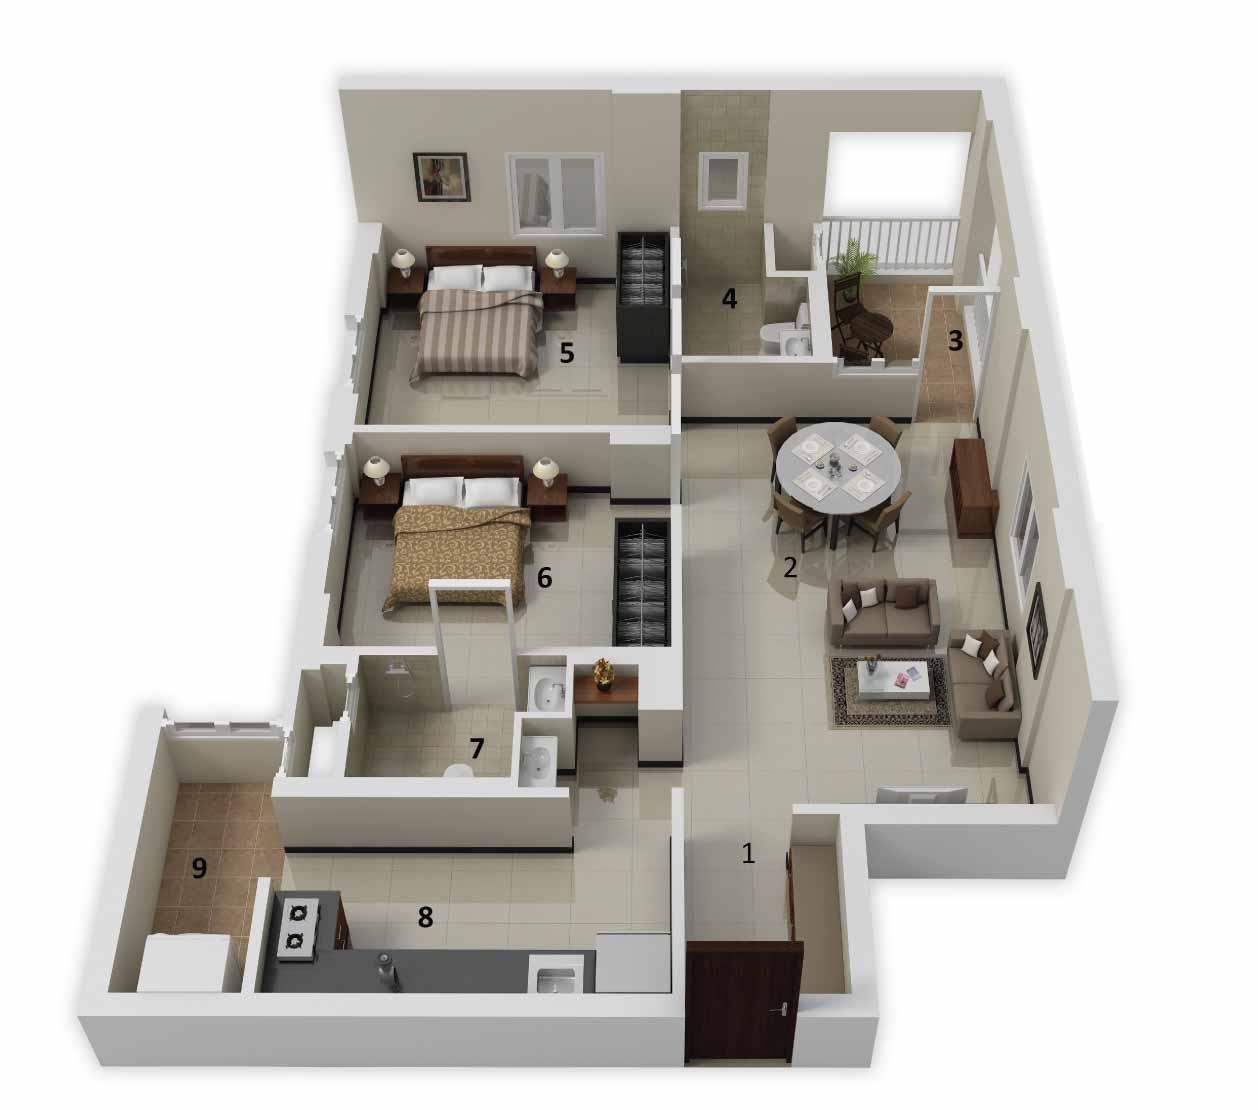 Simple Floor Plan Design. Simple Floor Plan Design B